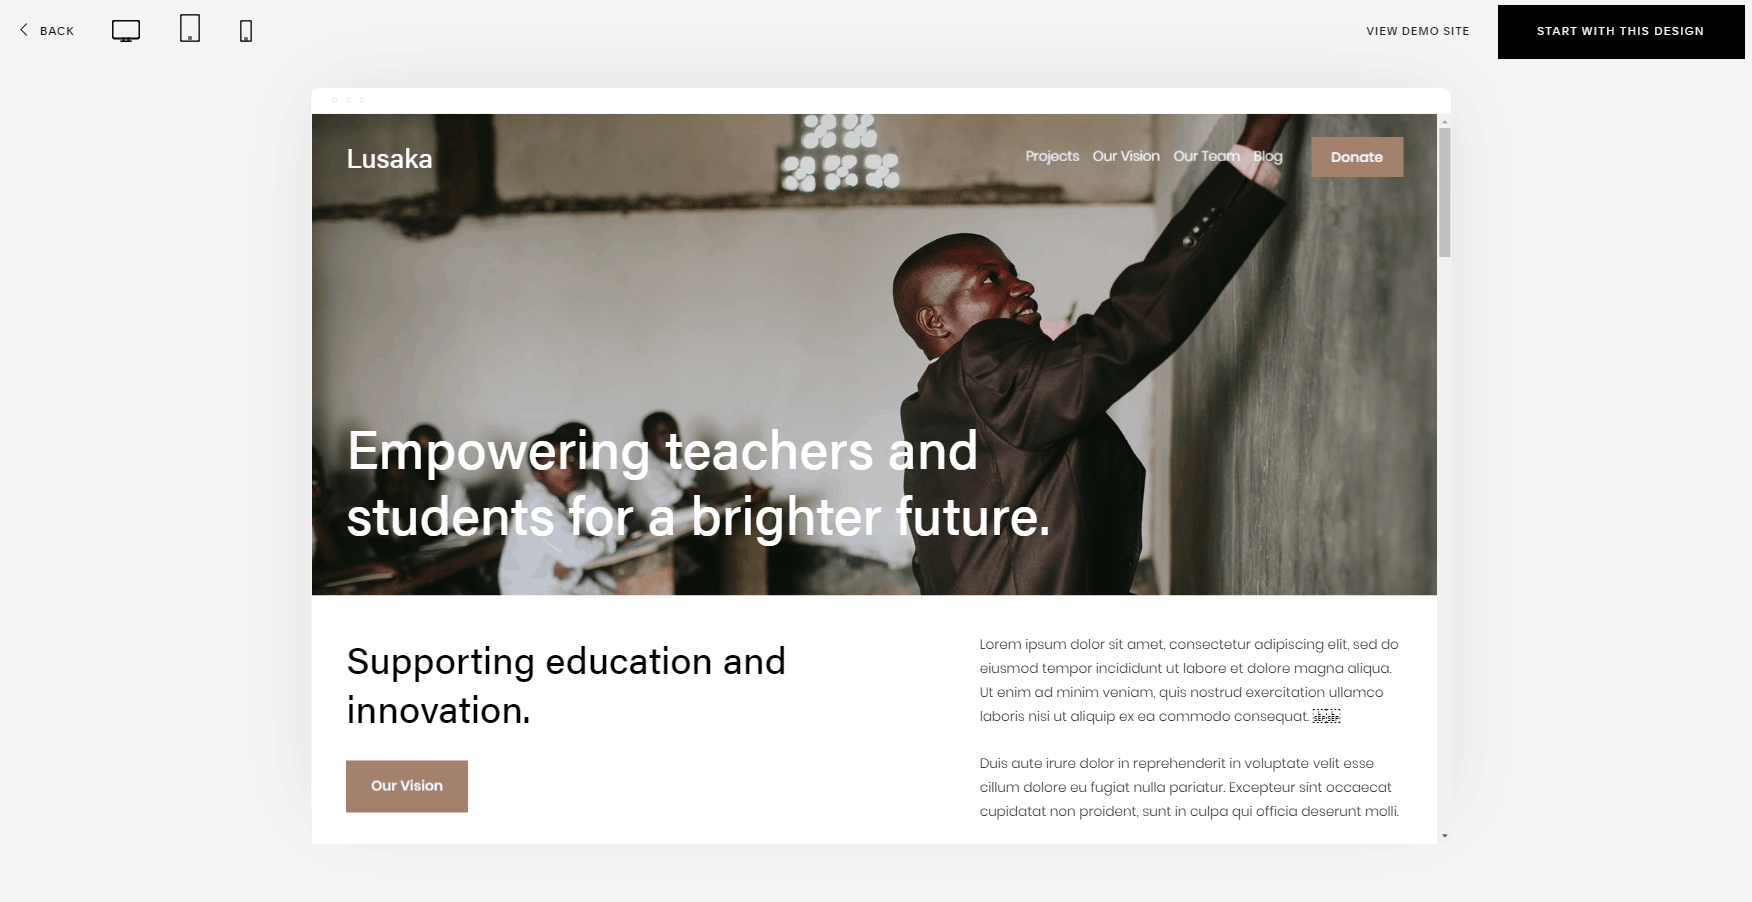 Squarespace Lusaka template for education nonprofits